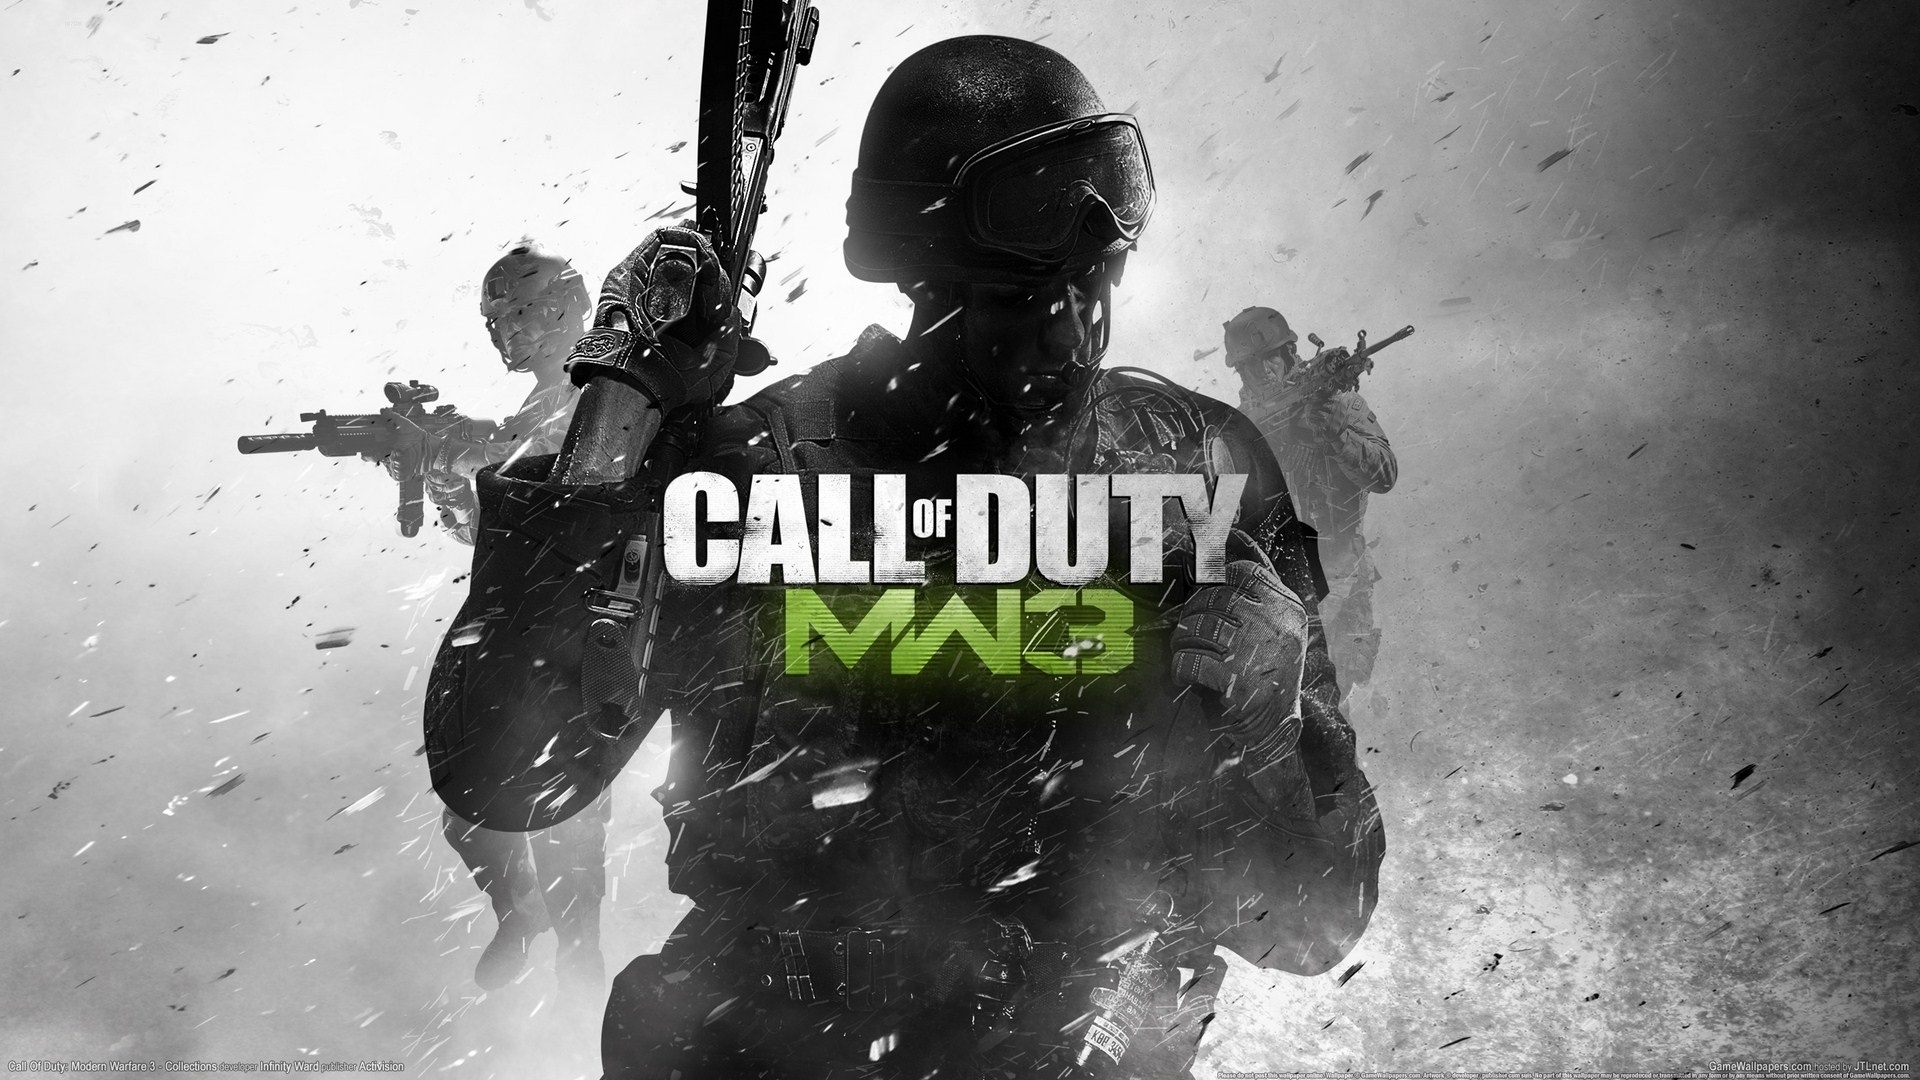 761569 call of duty modern warfare 3 wallpapers | games backgrounds